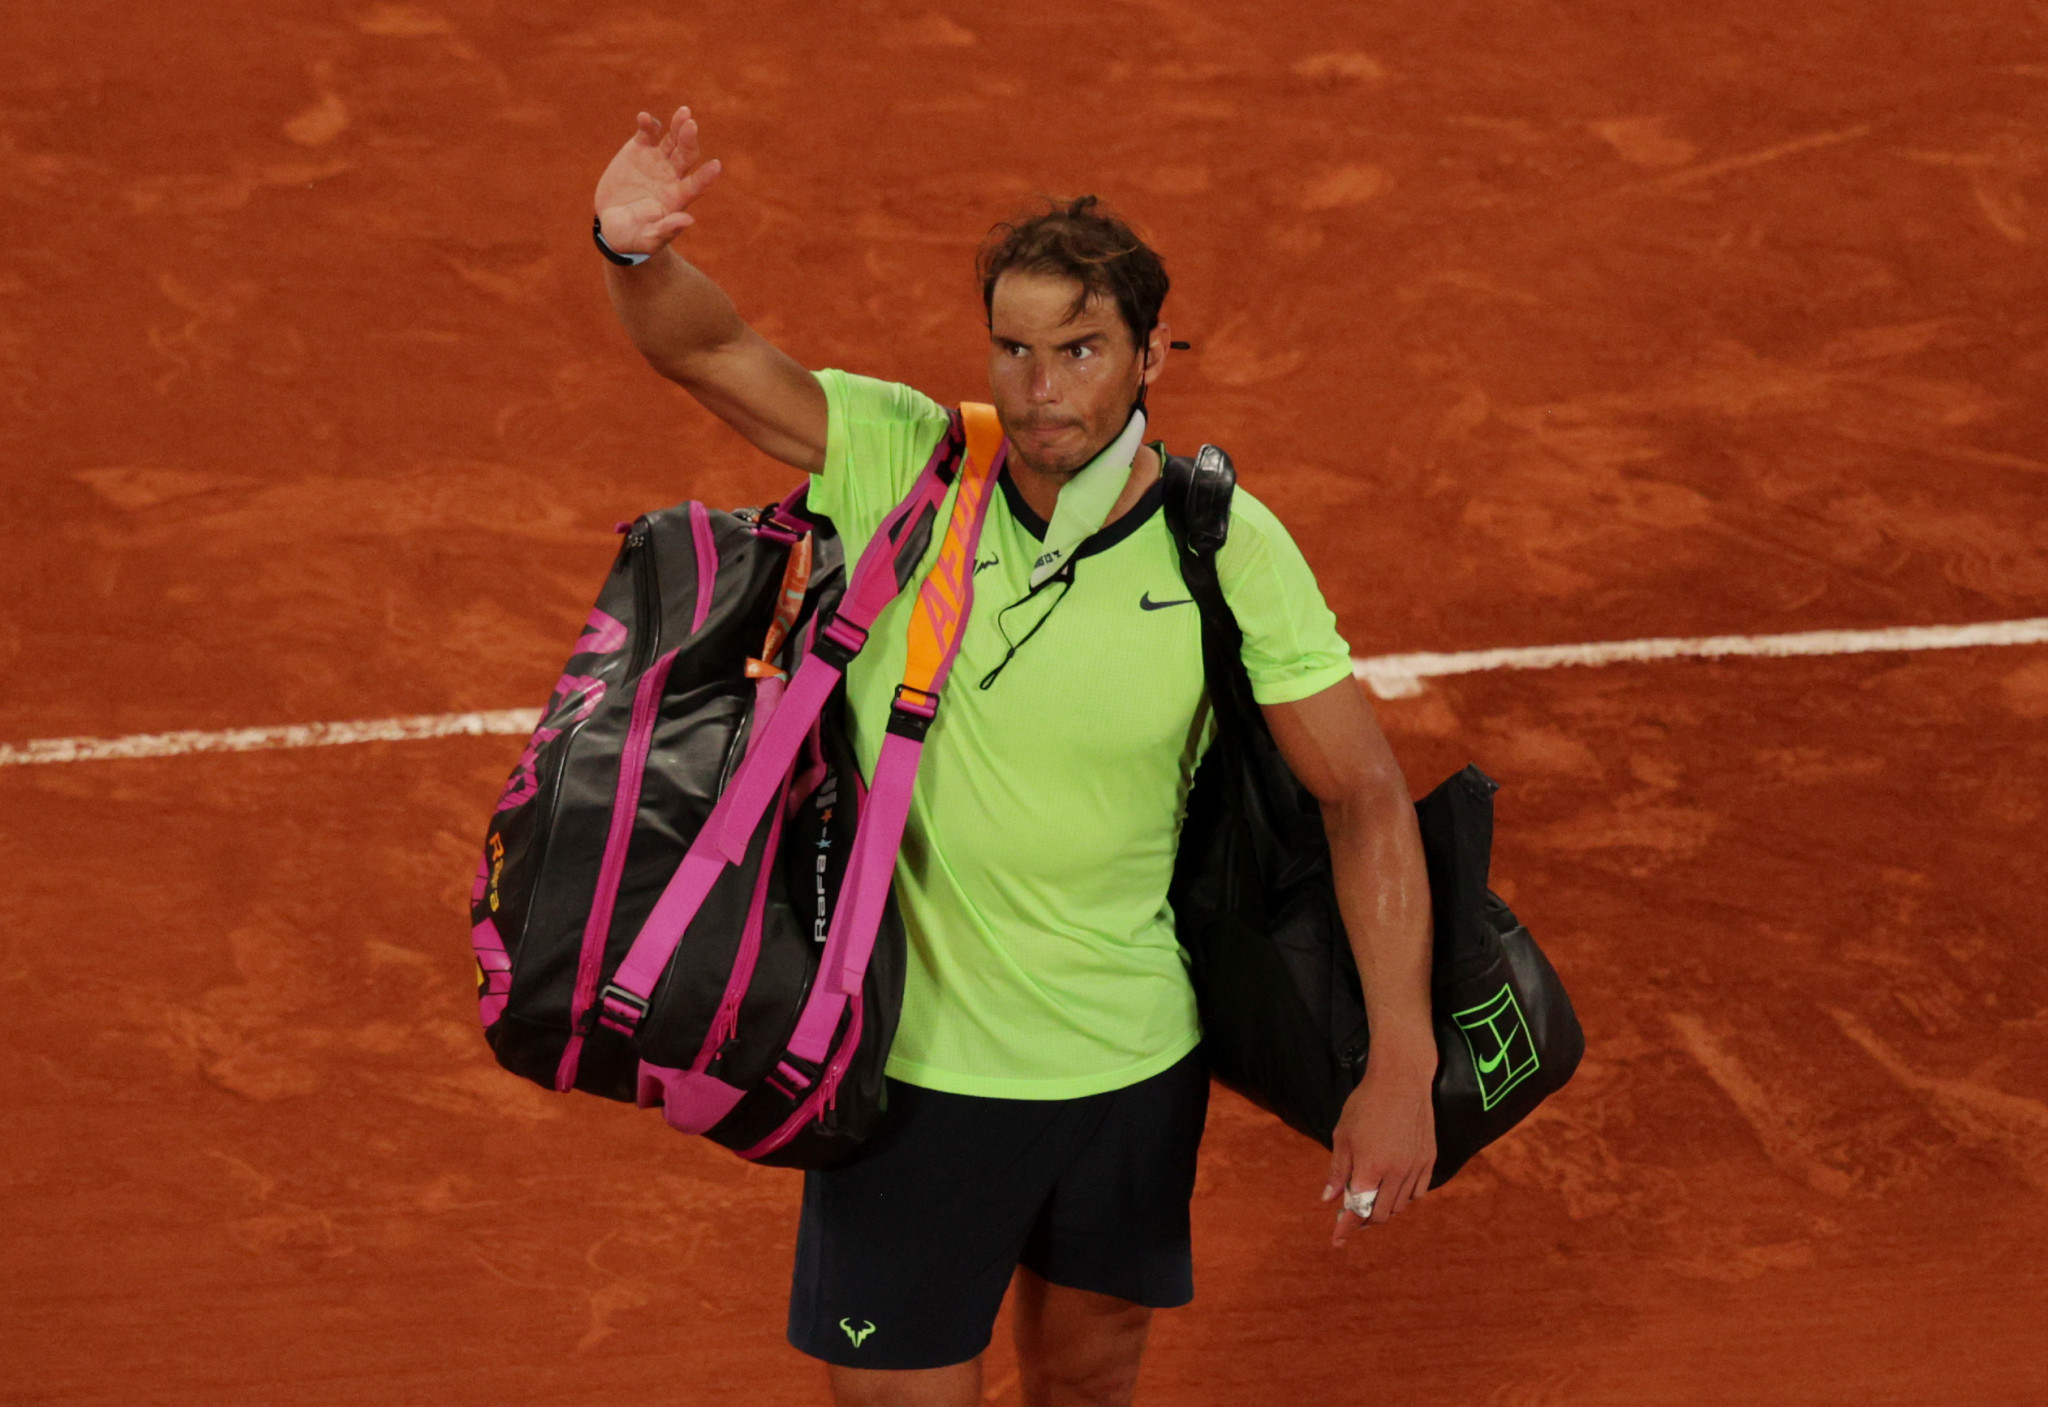 Nadal opts out of Wimbledon and Tokyo 2020 Olympics to help prolong career